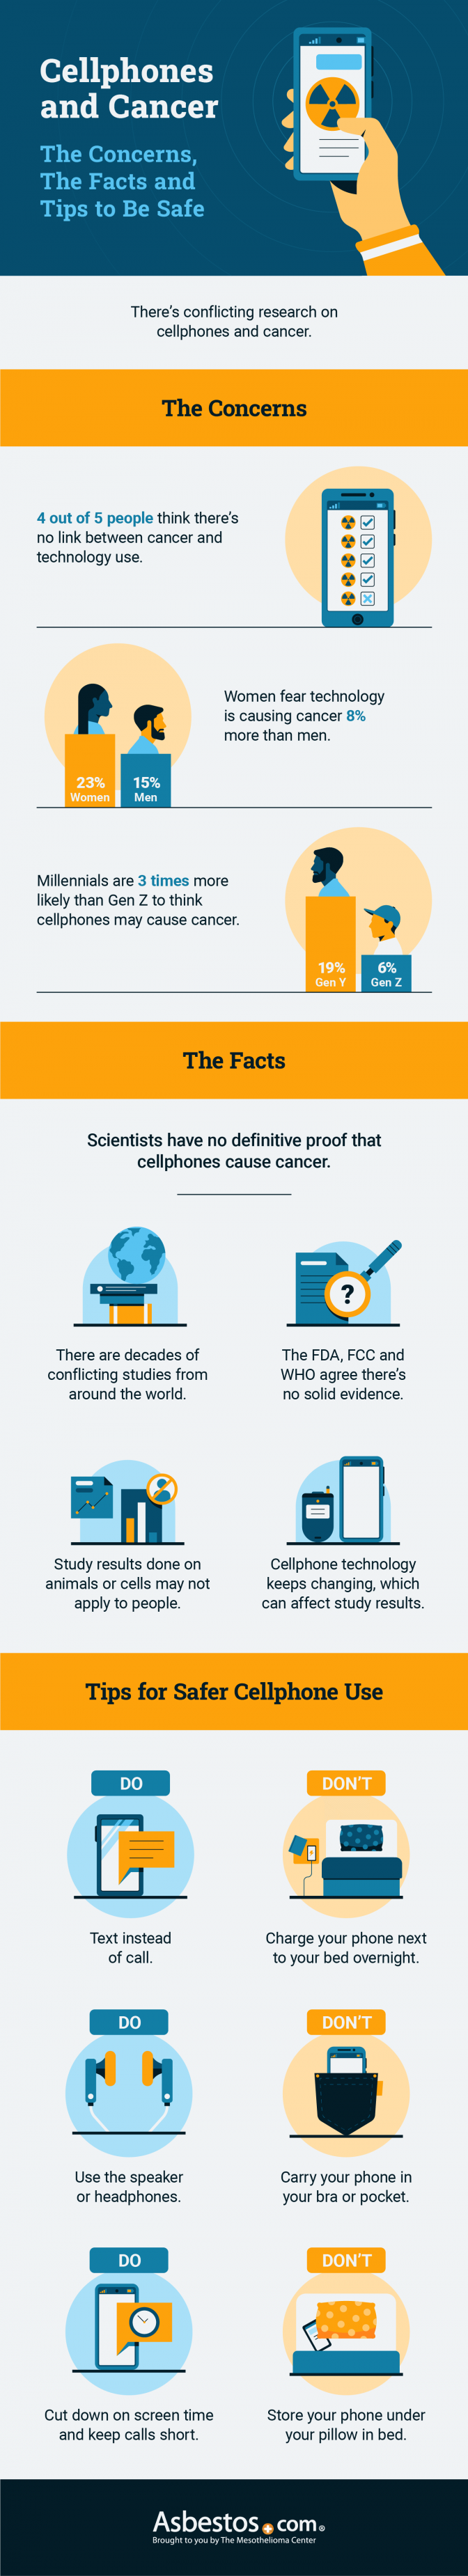 Cellphones and Cancer infographic